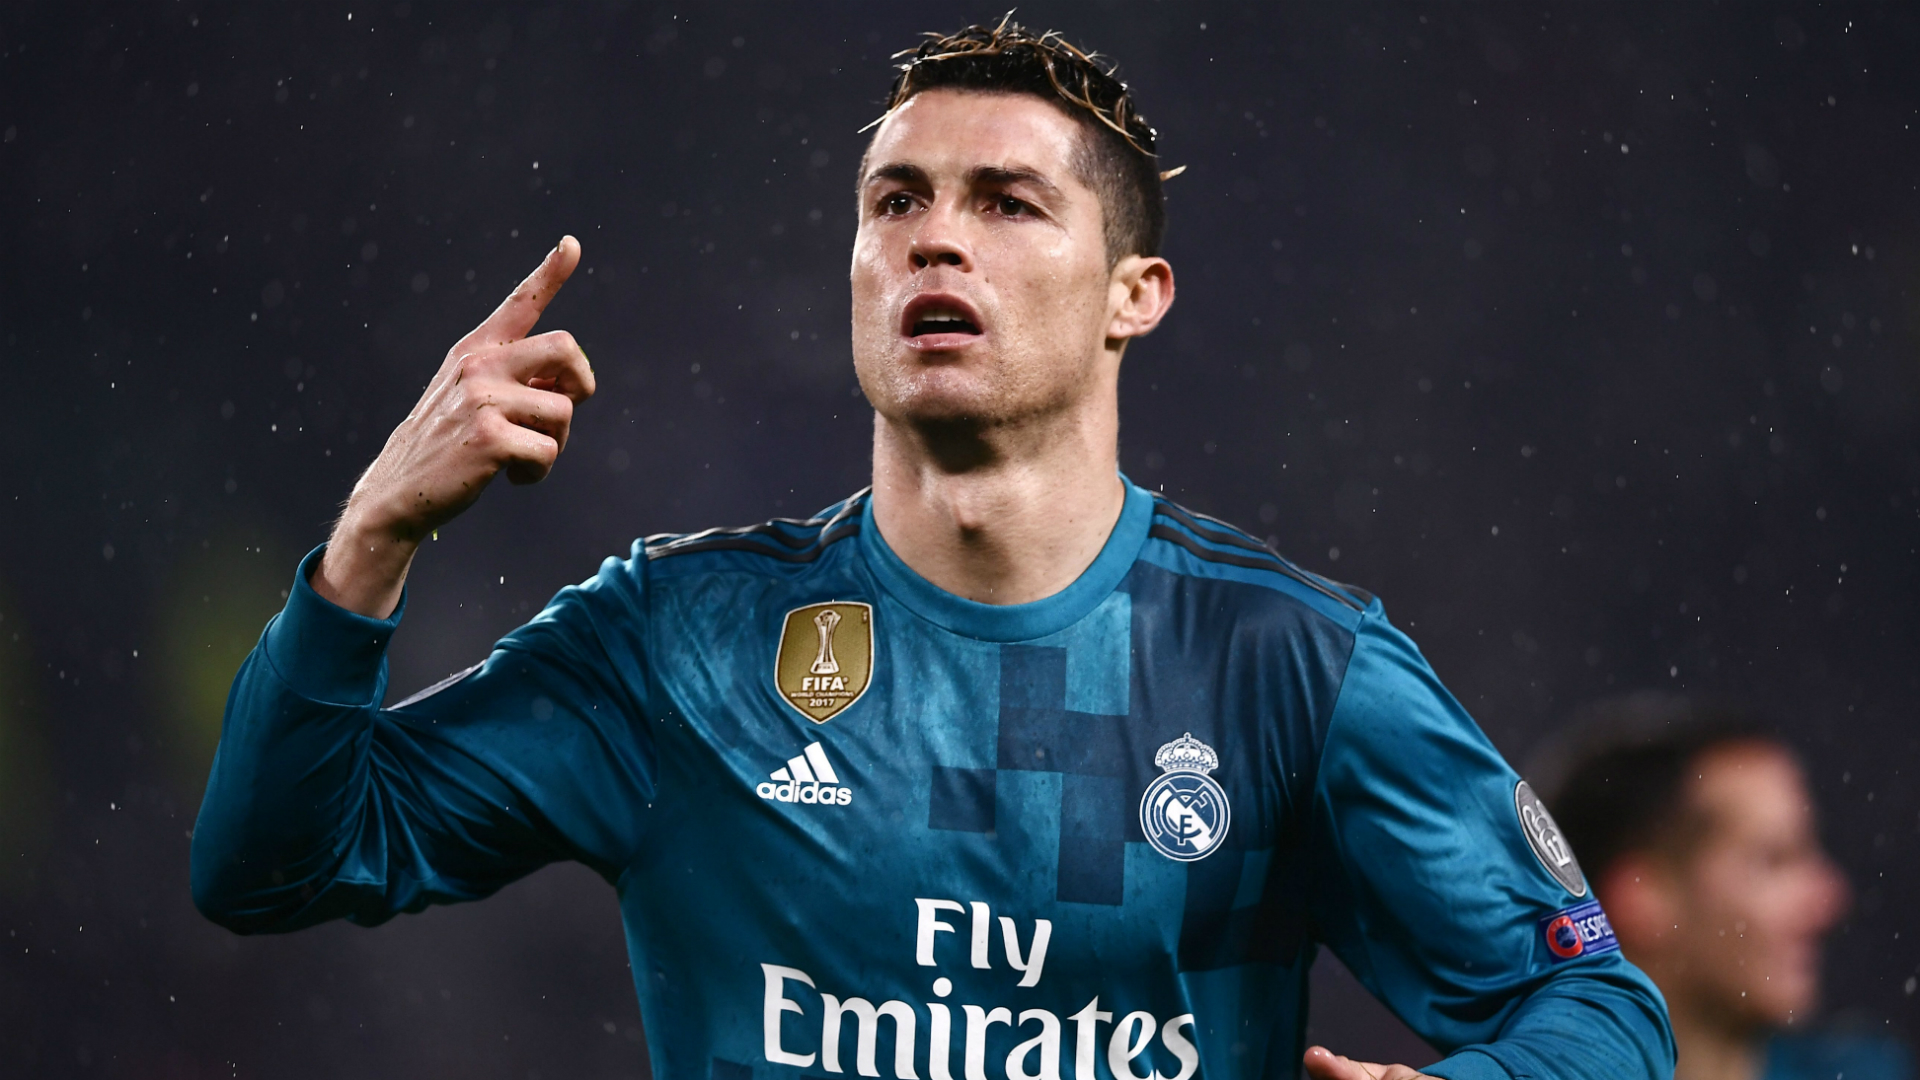 Ronaldo's Clinical Goal Perplexes Football World